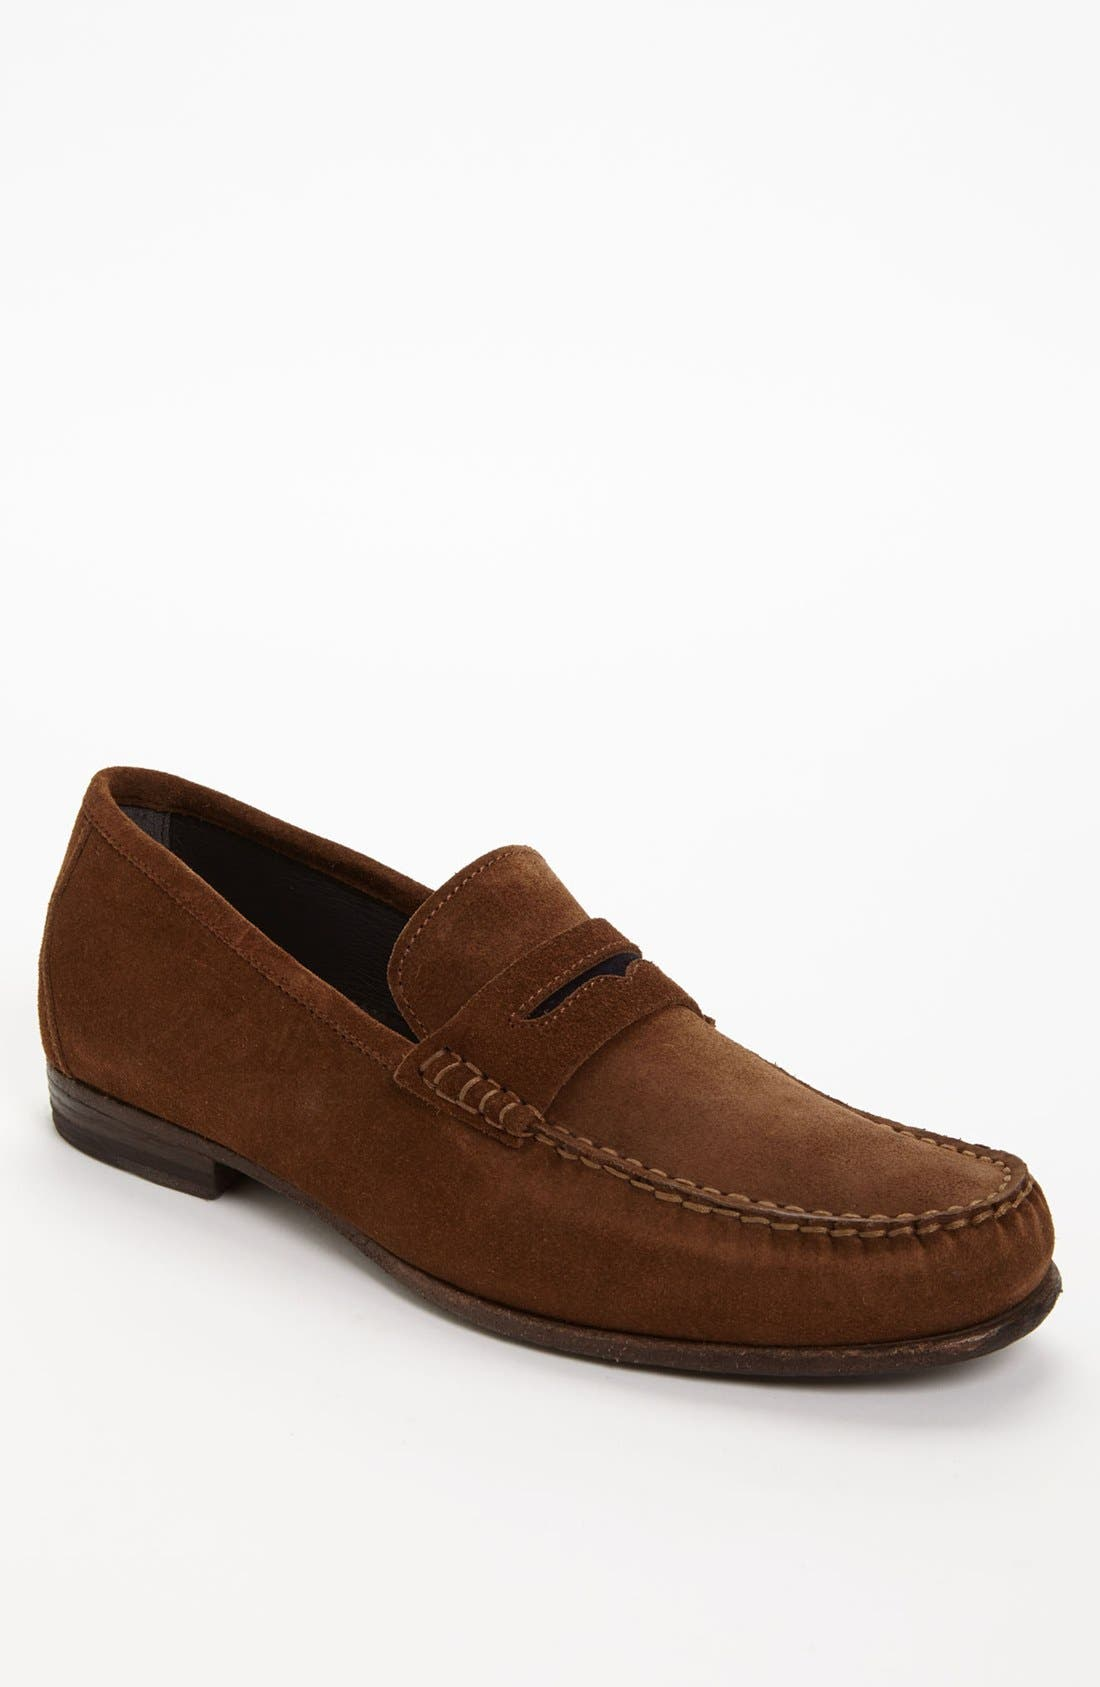 Alternate Image 1 Selected - To Boot New York 'Wilson' Suede Penny Loafer